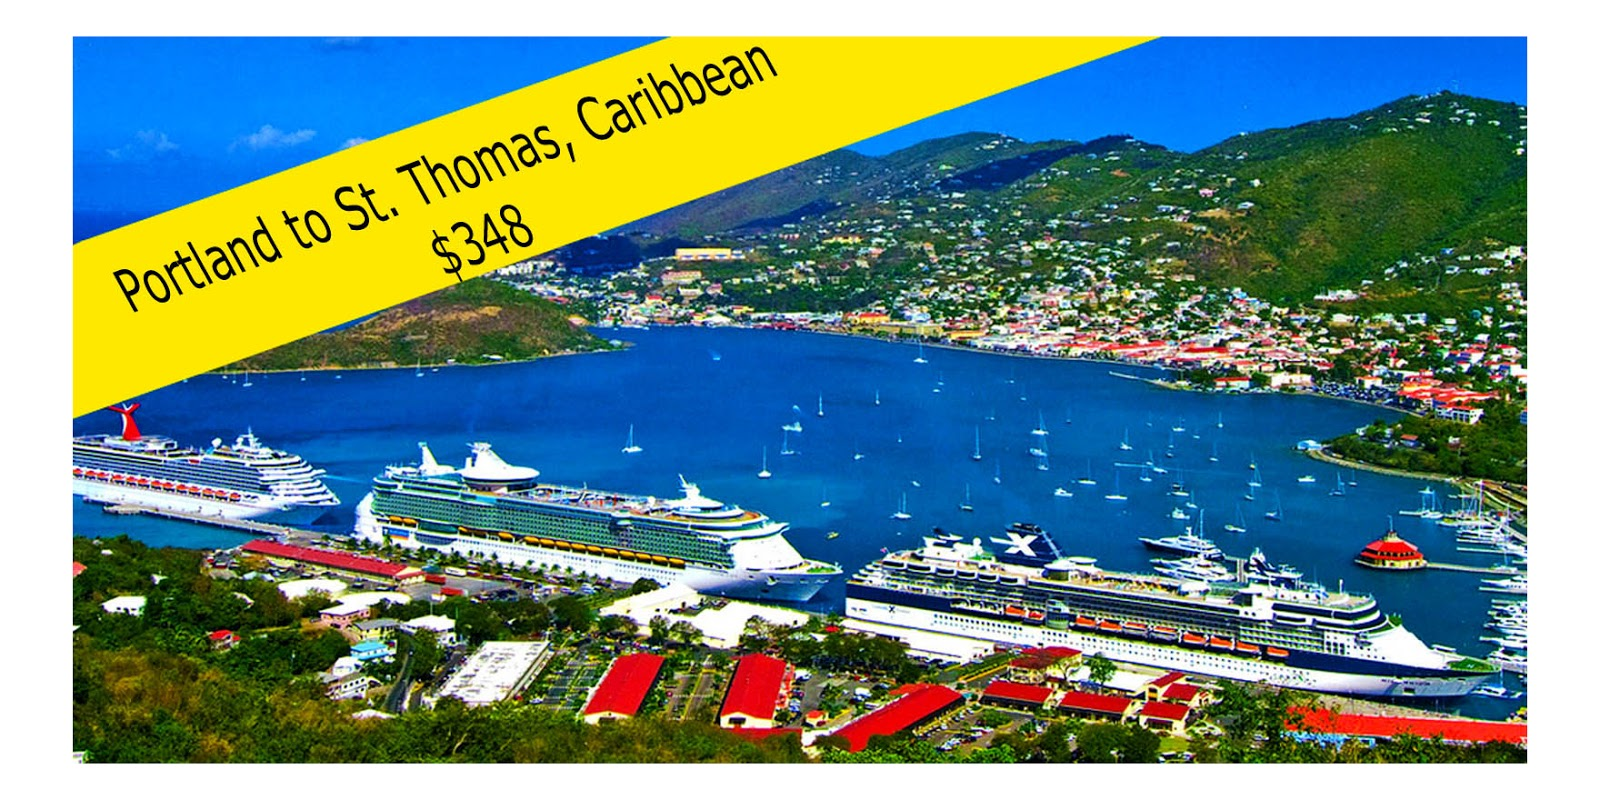 portland to st thomas caribbean island great winter fare 348 earn up to 9 629 mqm s w delta air lines